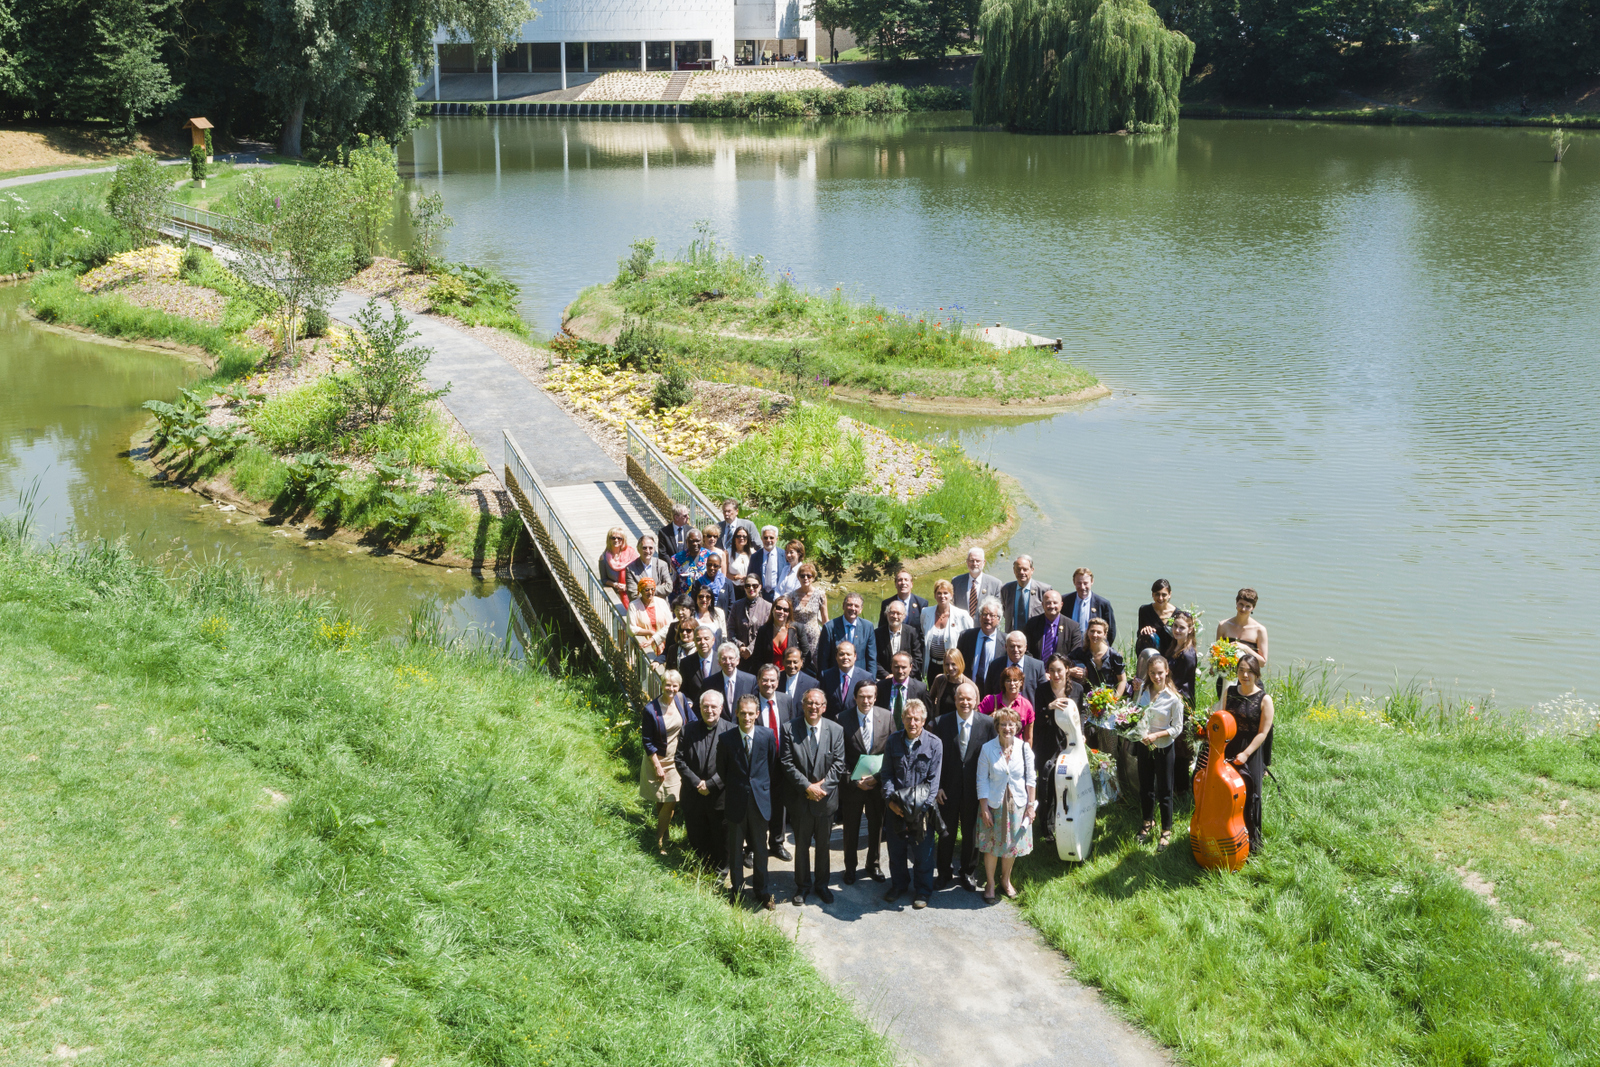 More than 30 countries in Péronne commemorate the centenary of the Great War